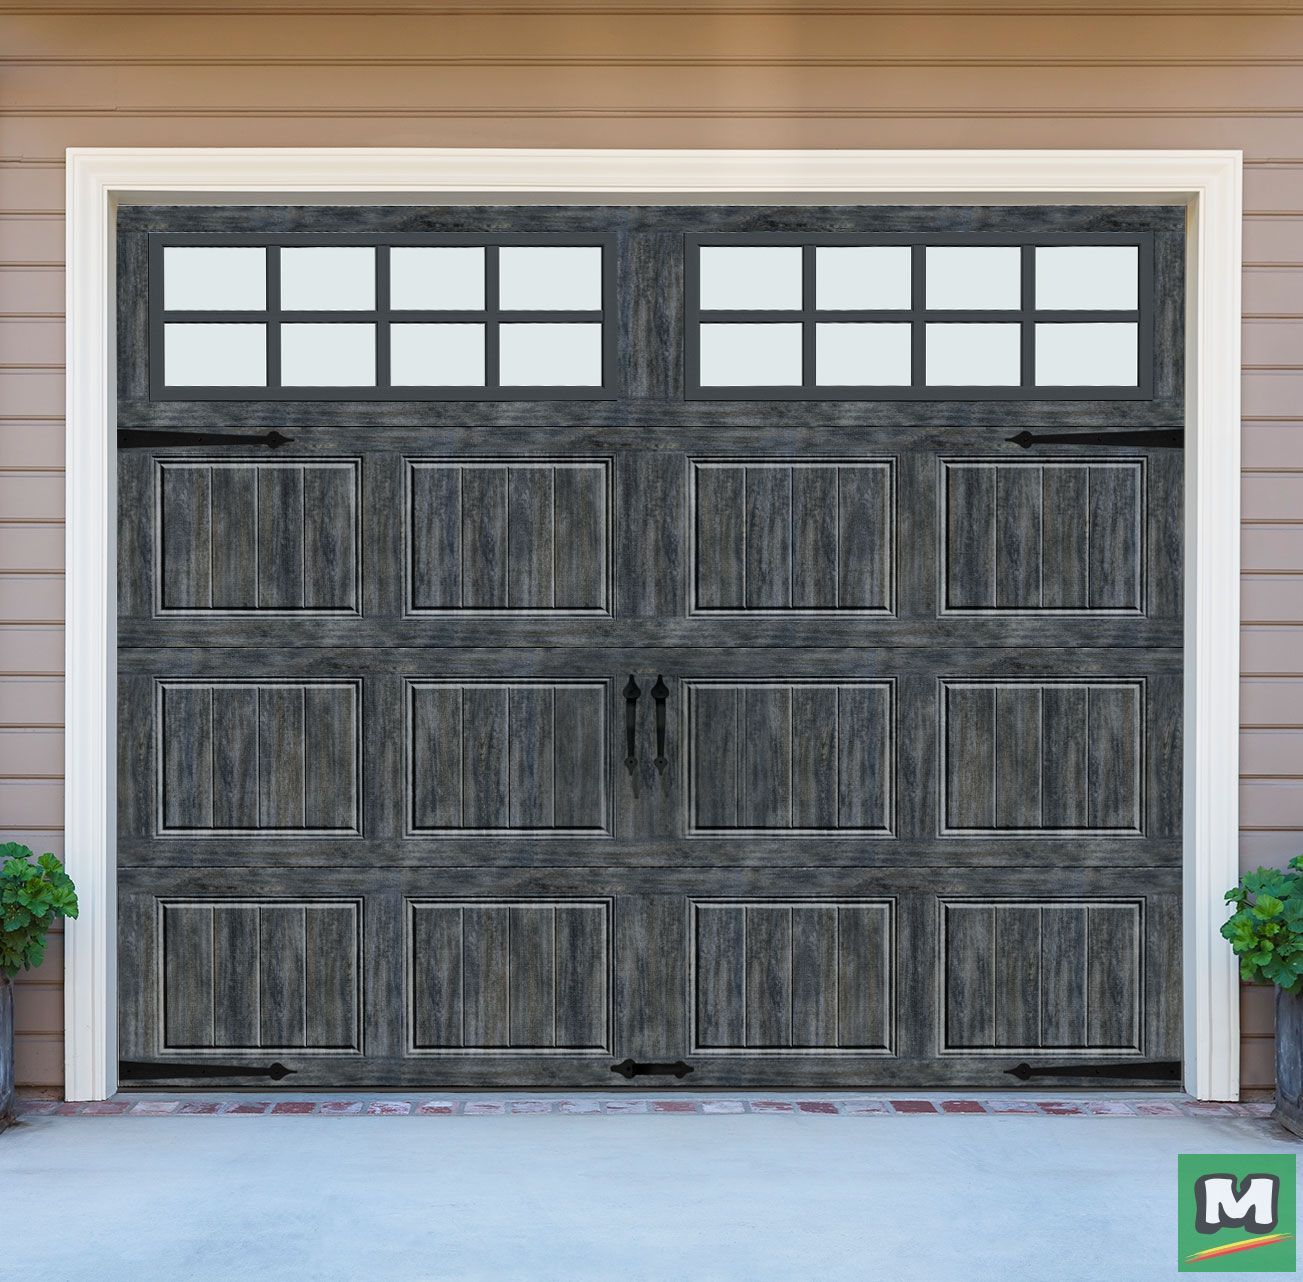 Up your curb appeal with an ideal door designer series steel panel slate garage door